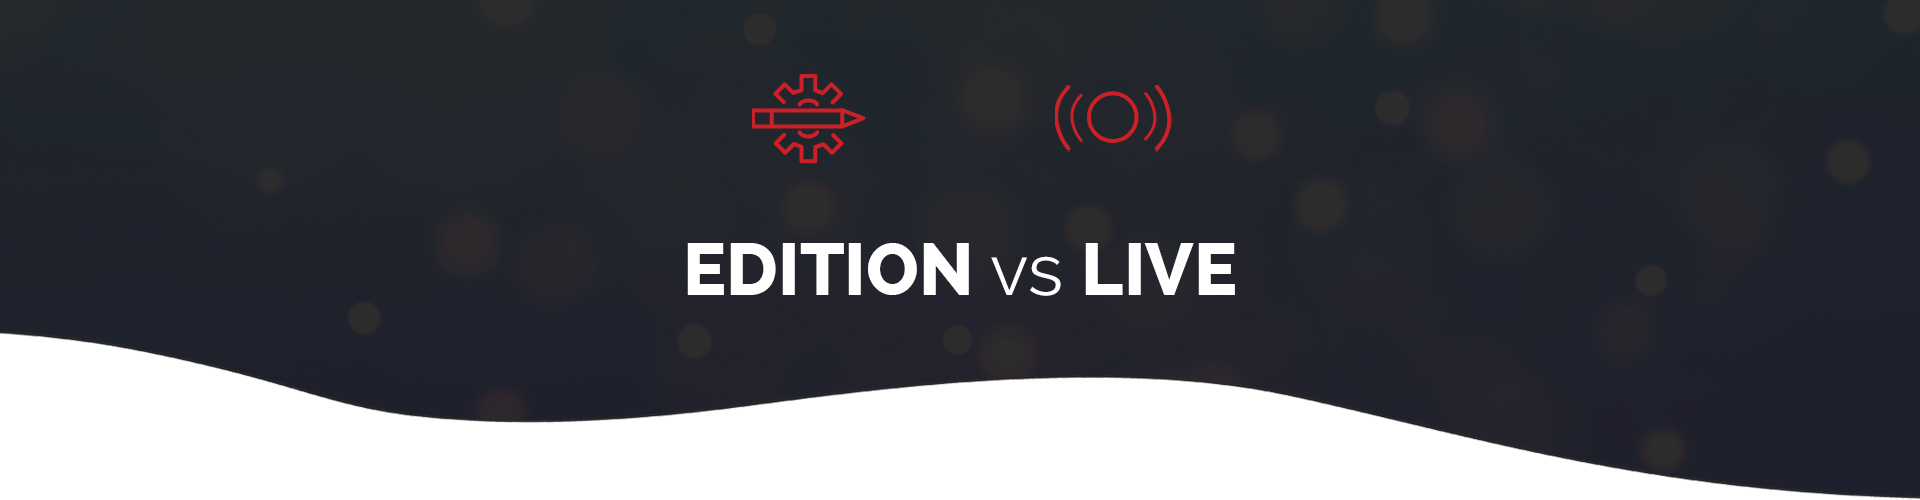 Header image of Edition vs Live – Which is best?